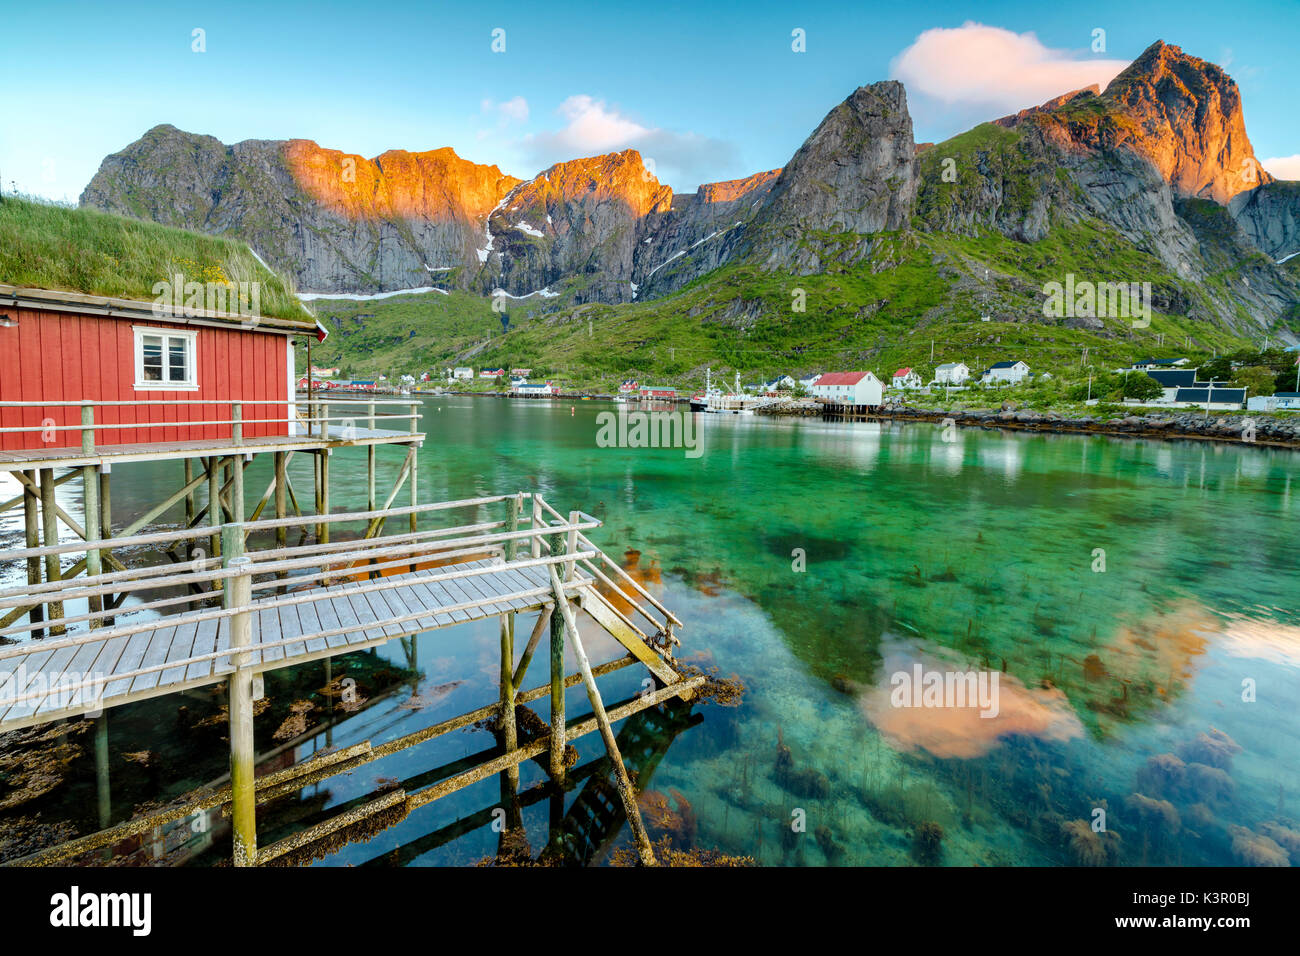 Midnight sun on fishing village and peaks surrounded by clear sea Reine Nordland county Lofoten Islands Northern Norway Europe - Stock Image